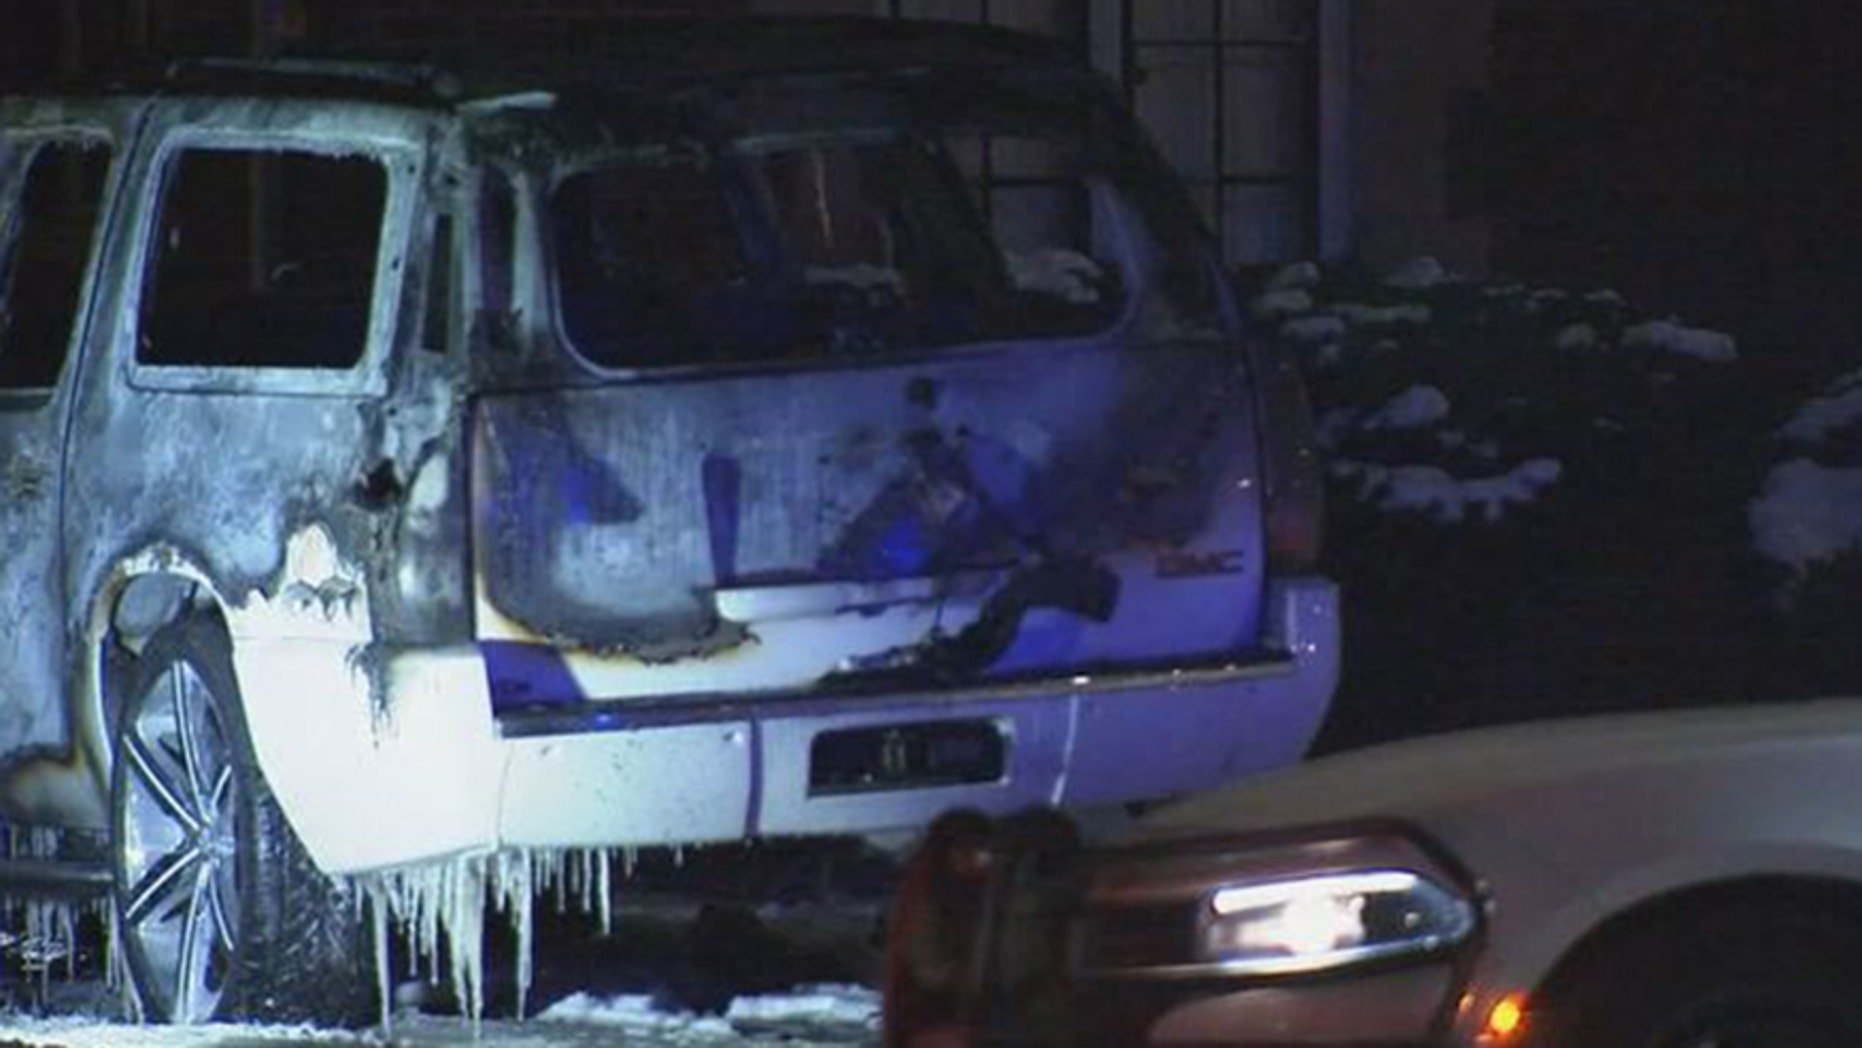 A burning SUV with a body inside was found early Wednesday morning in Detroit.